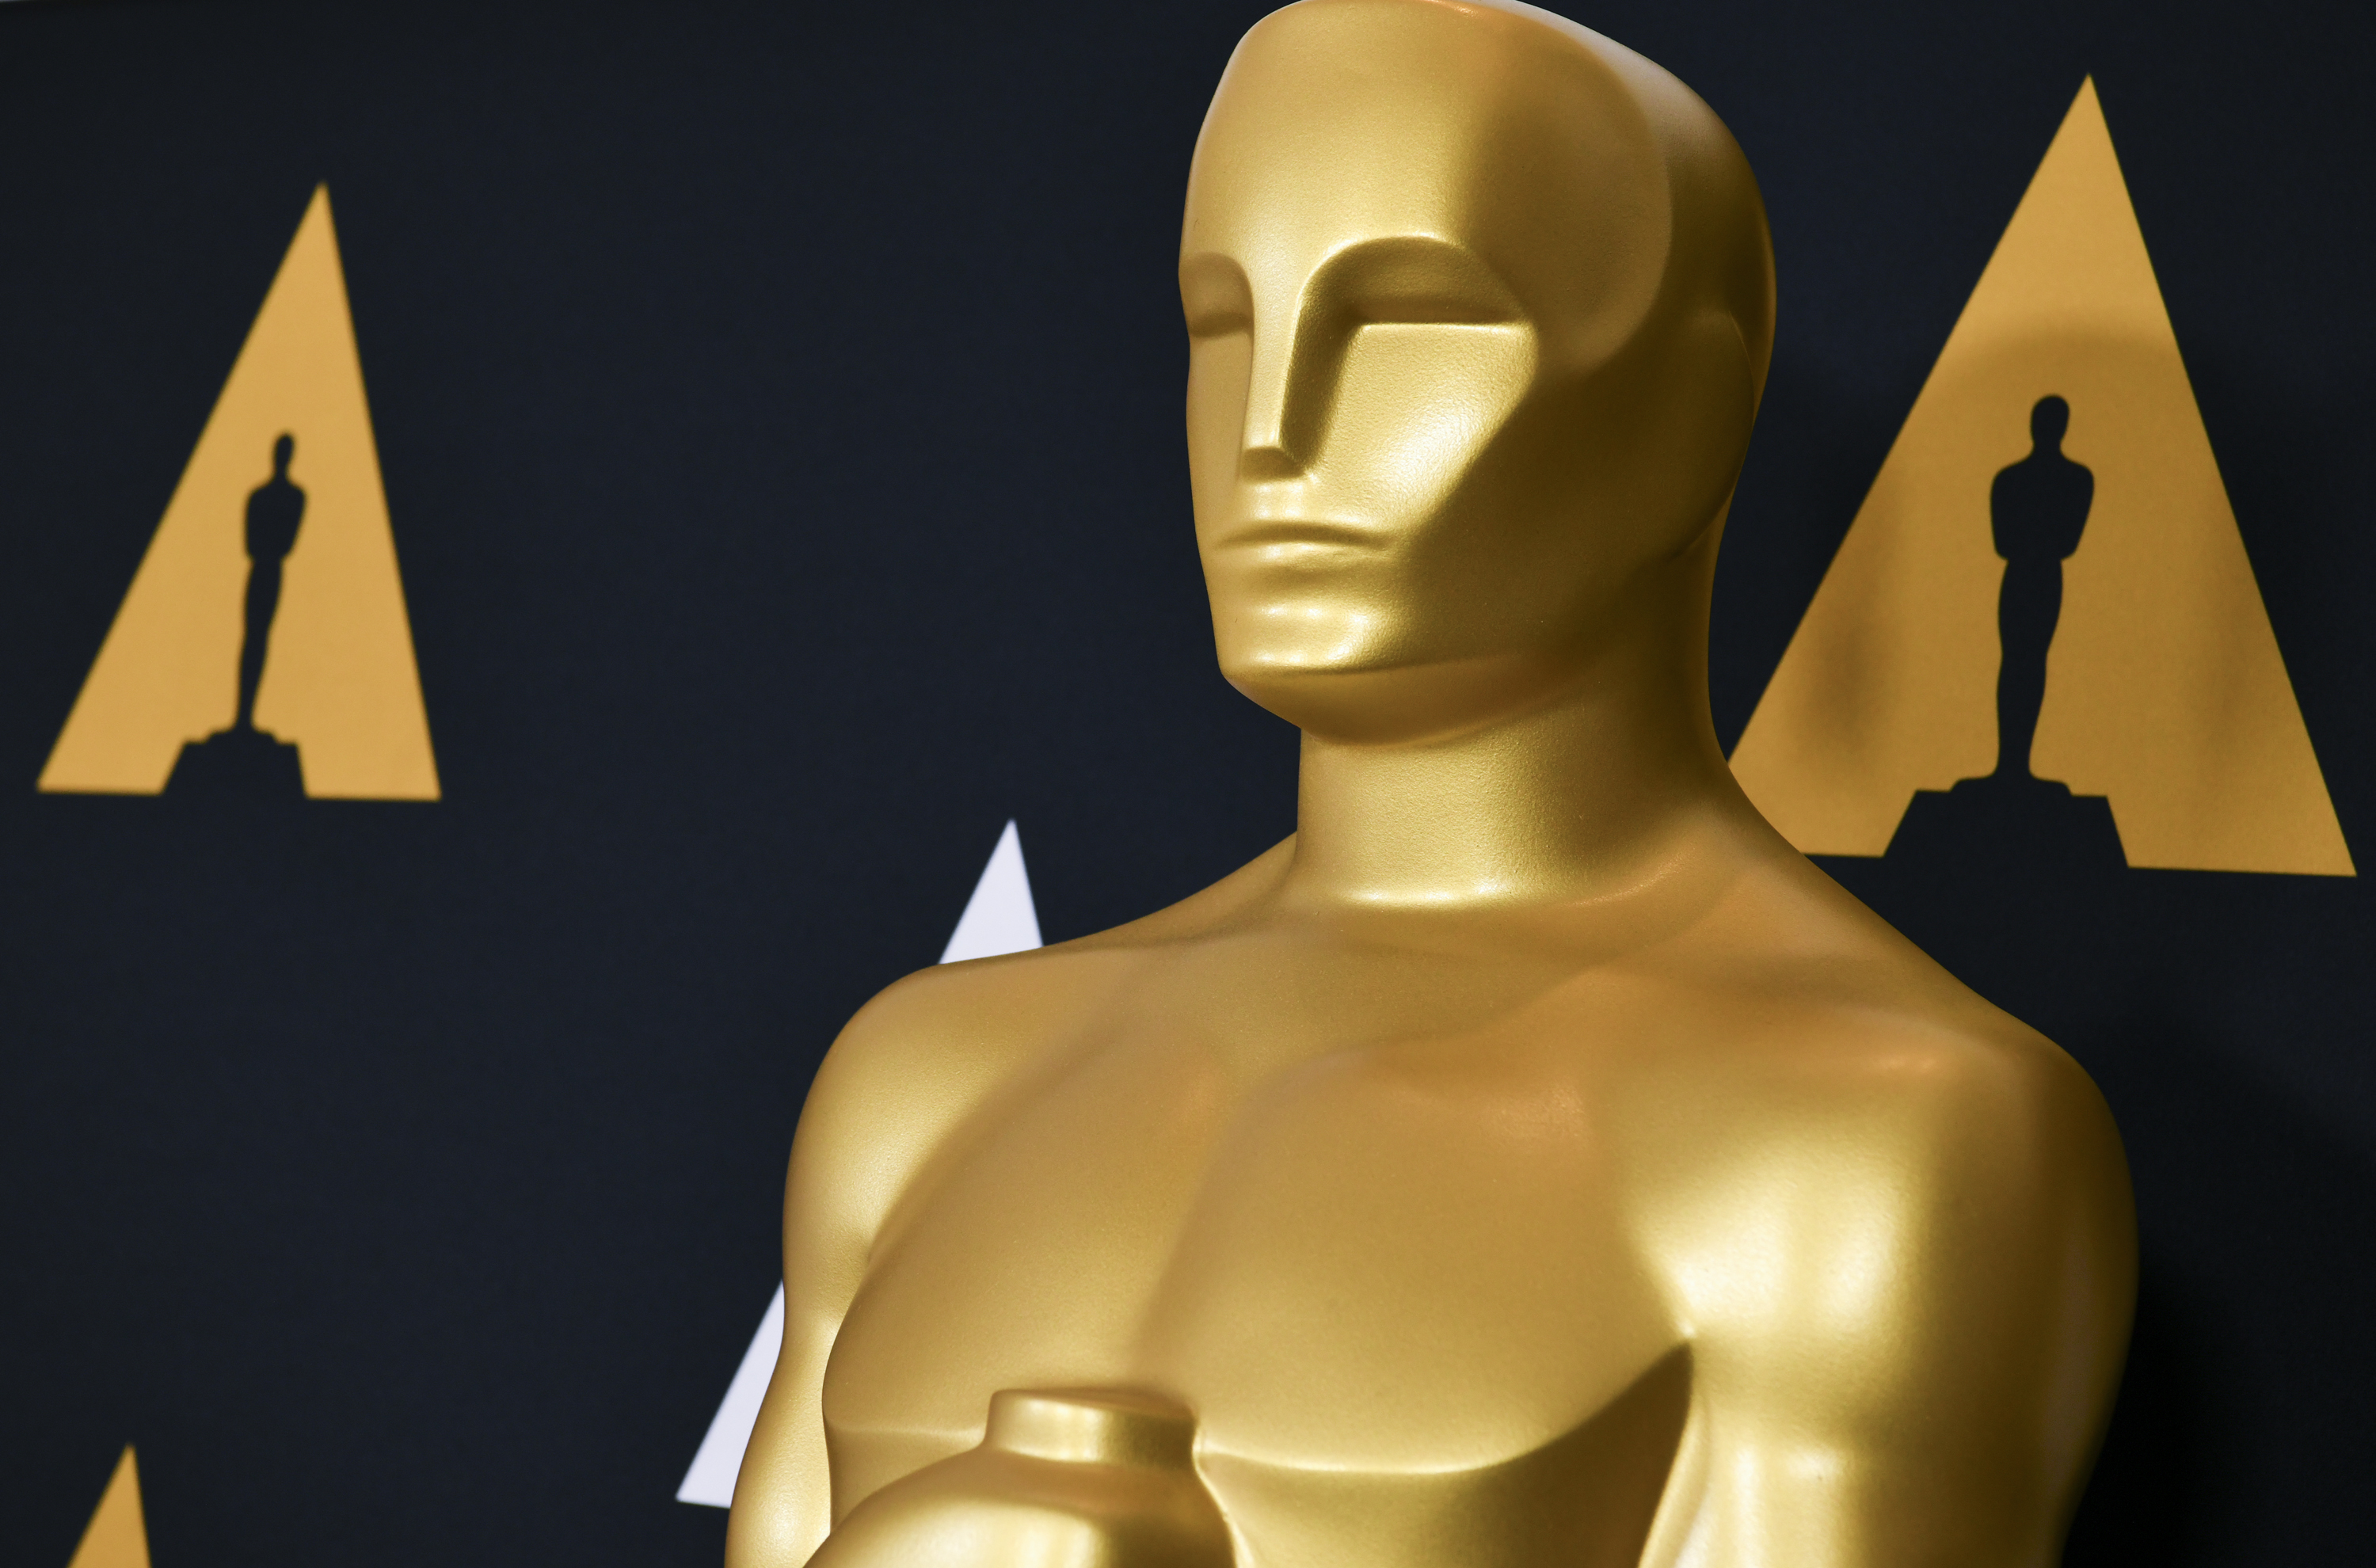 a close-up of a giant Academy Award statue